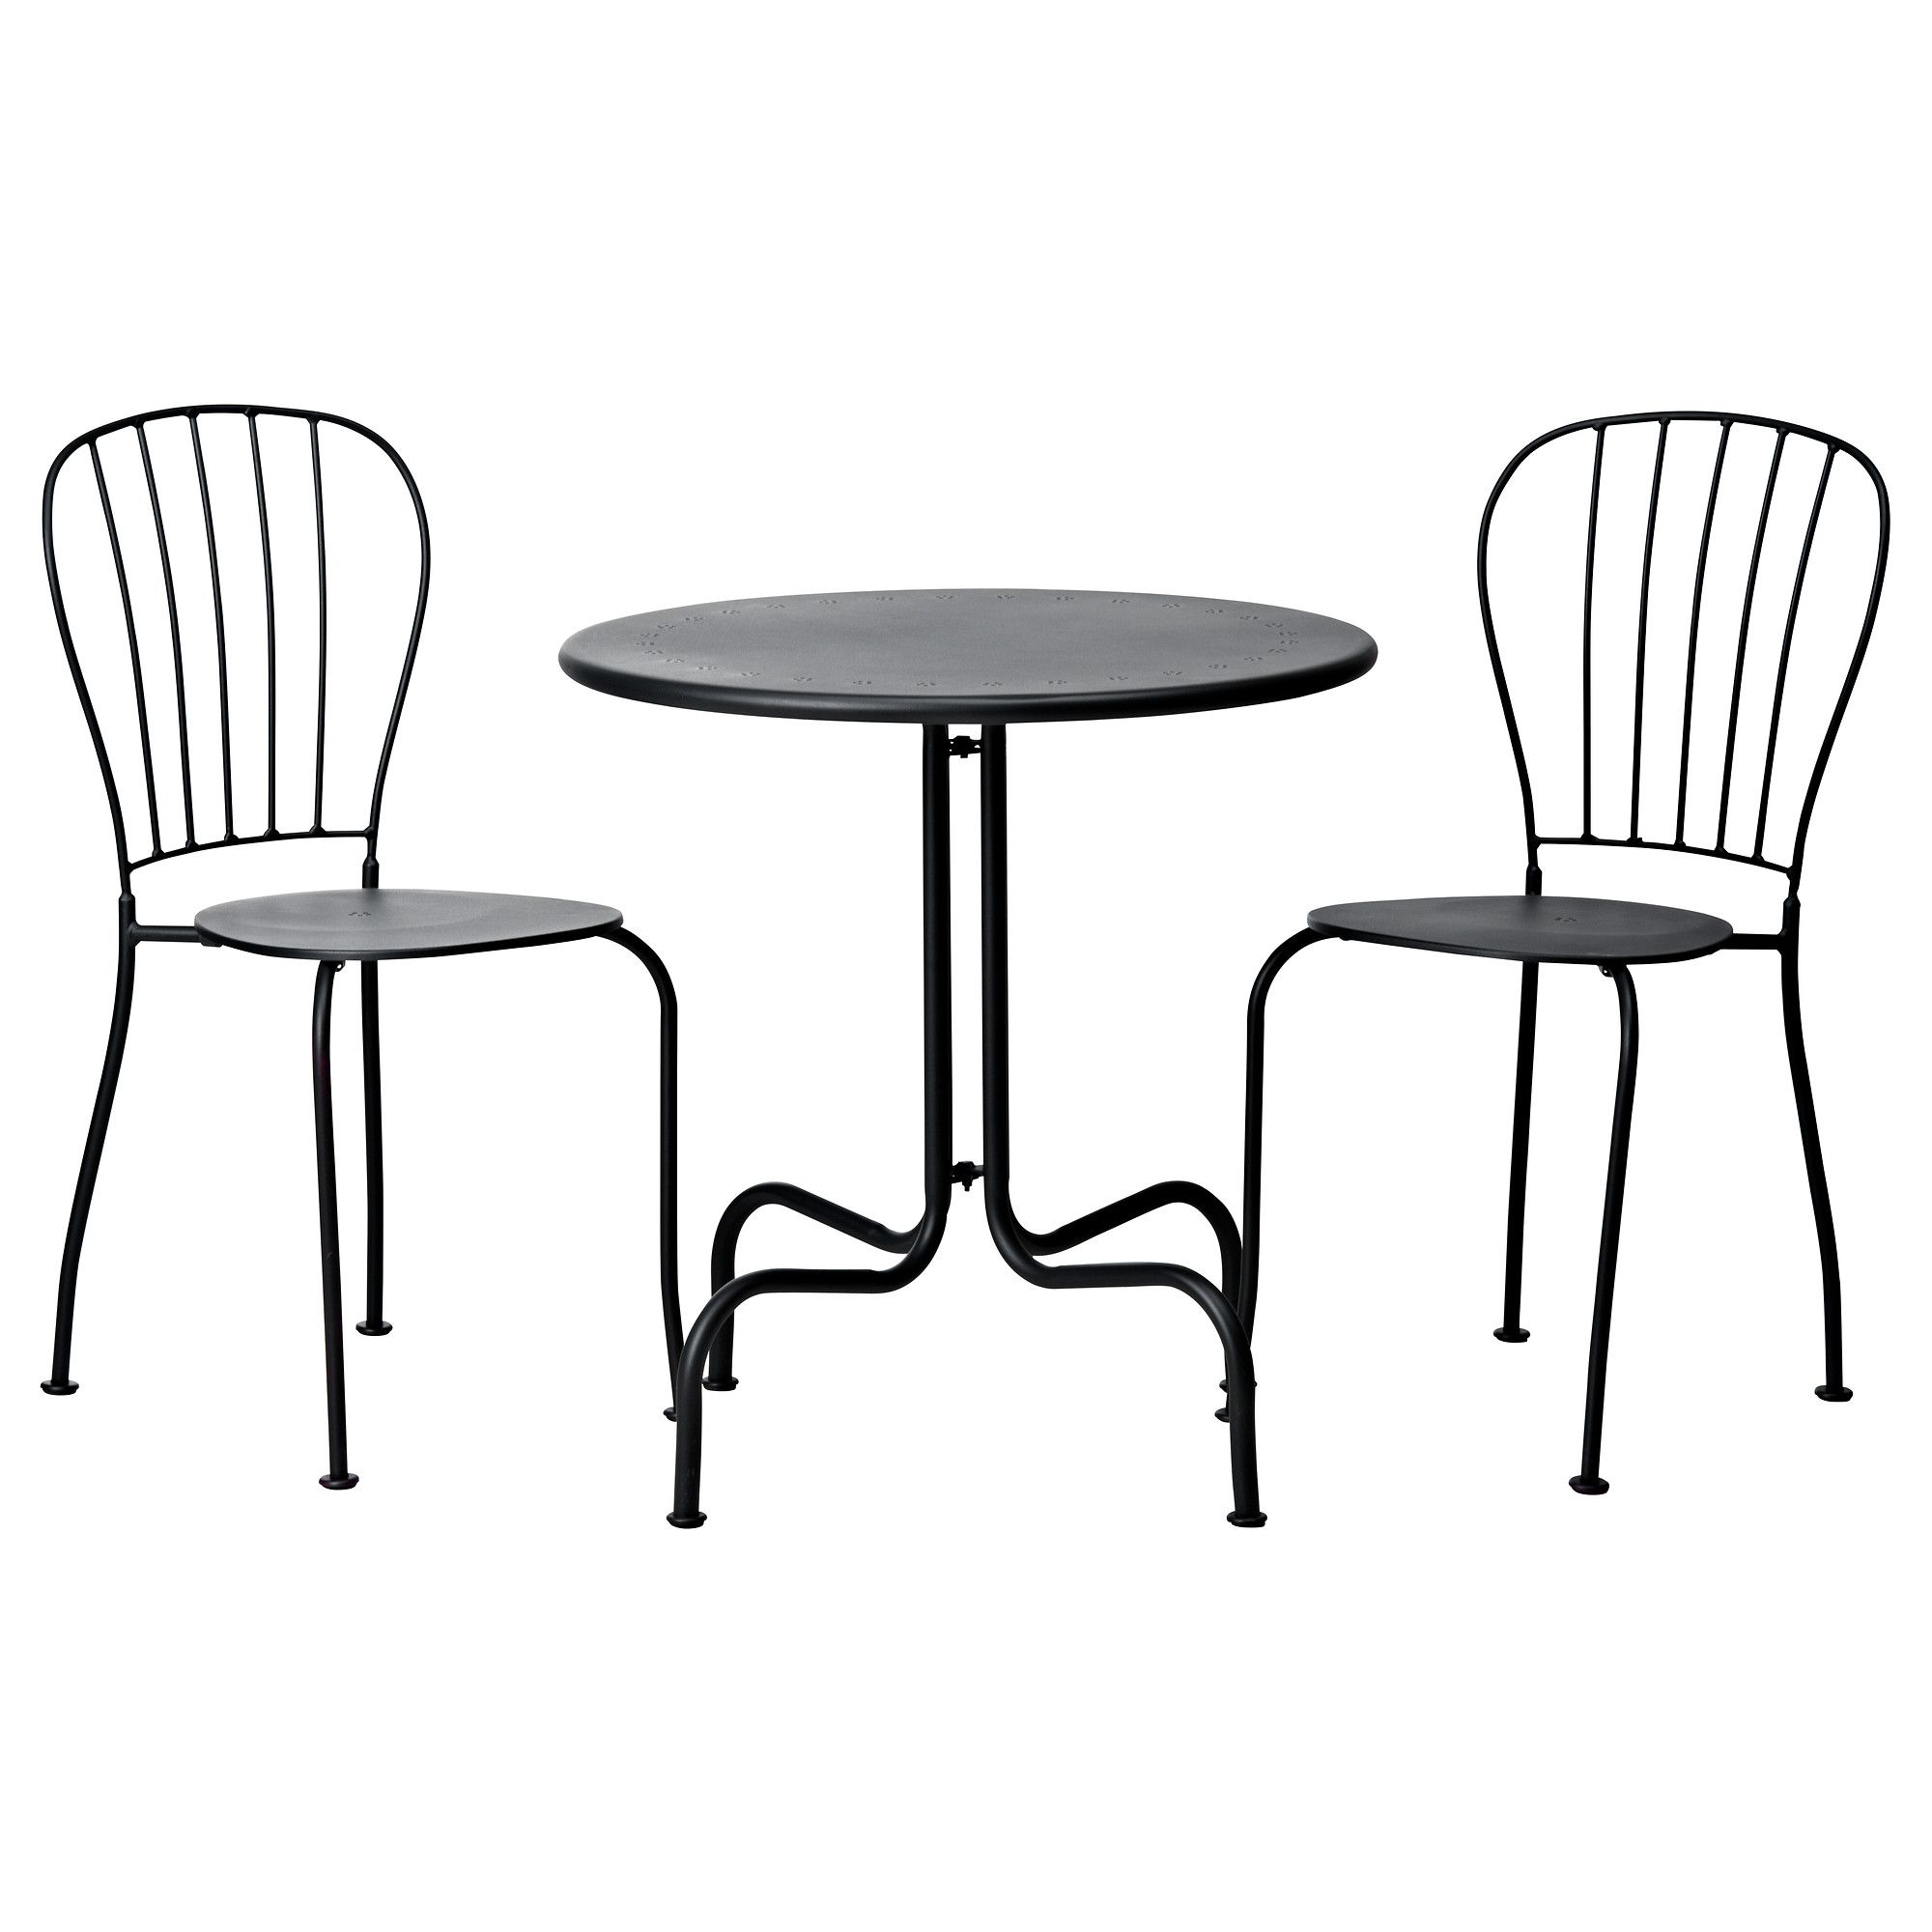 l ck table and chairs sprays and ikea chair. Black Bedroom Furniture Sets. Home Design Ideas